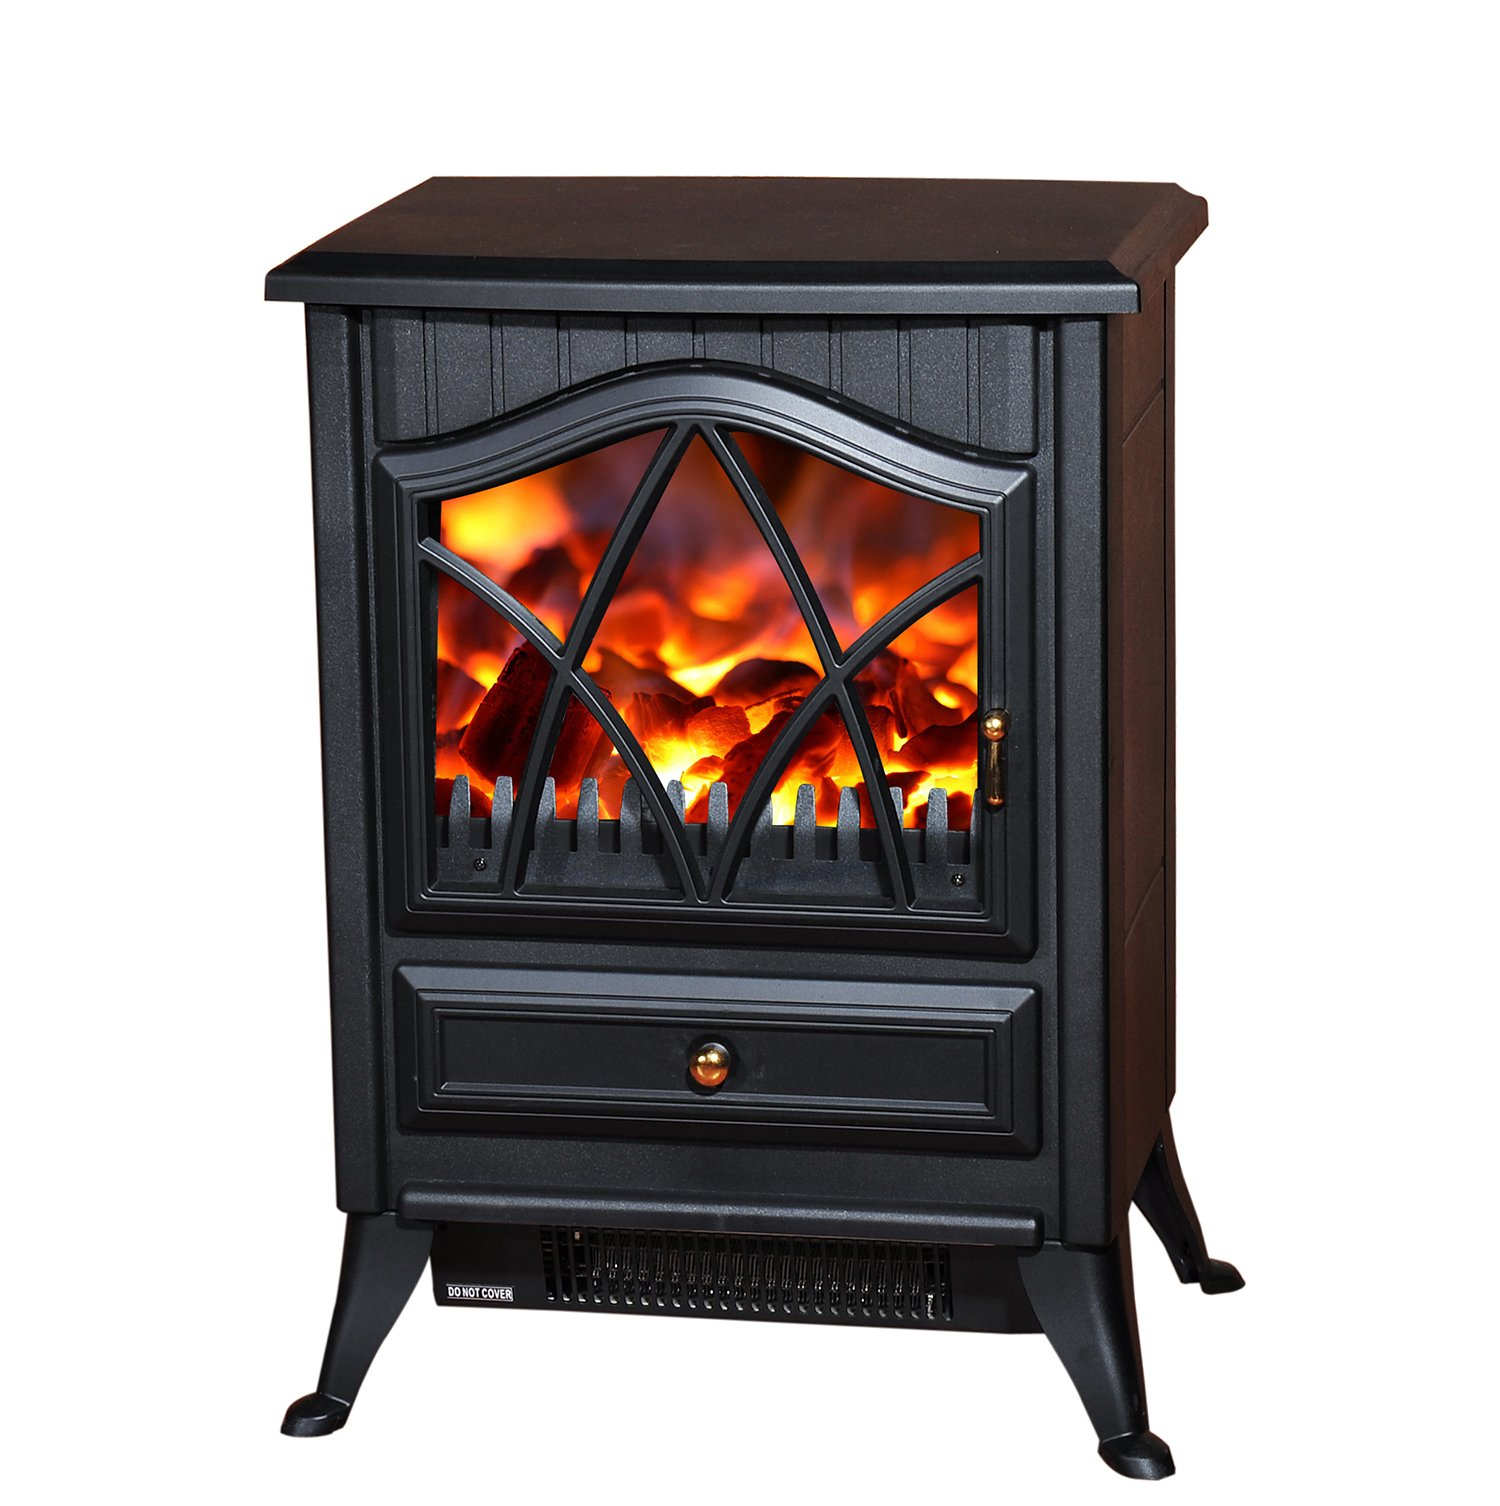 Homcom 1850w Log Burning Flame Effect Stove Heater Electric Fire Place Firepl